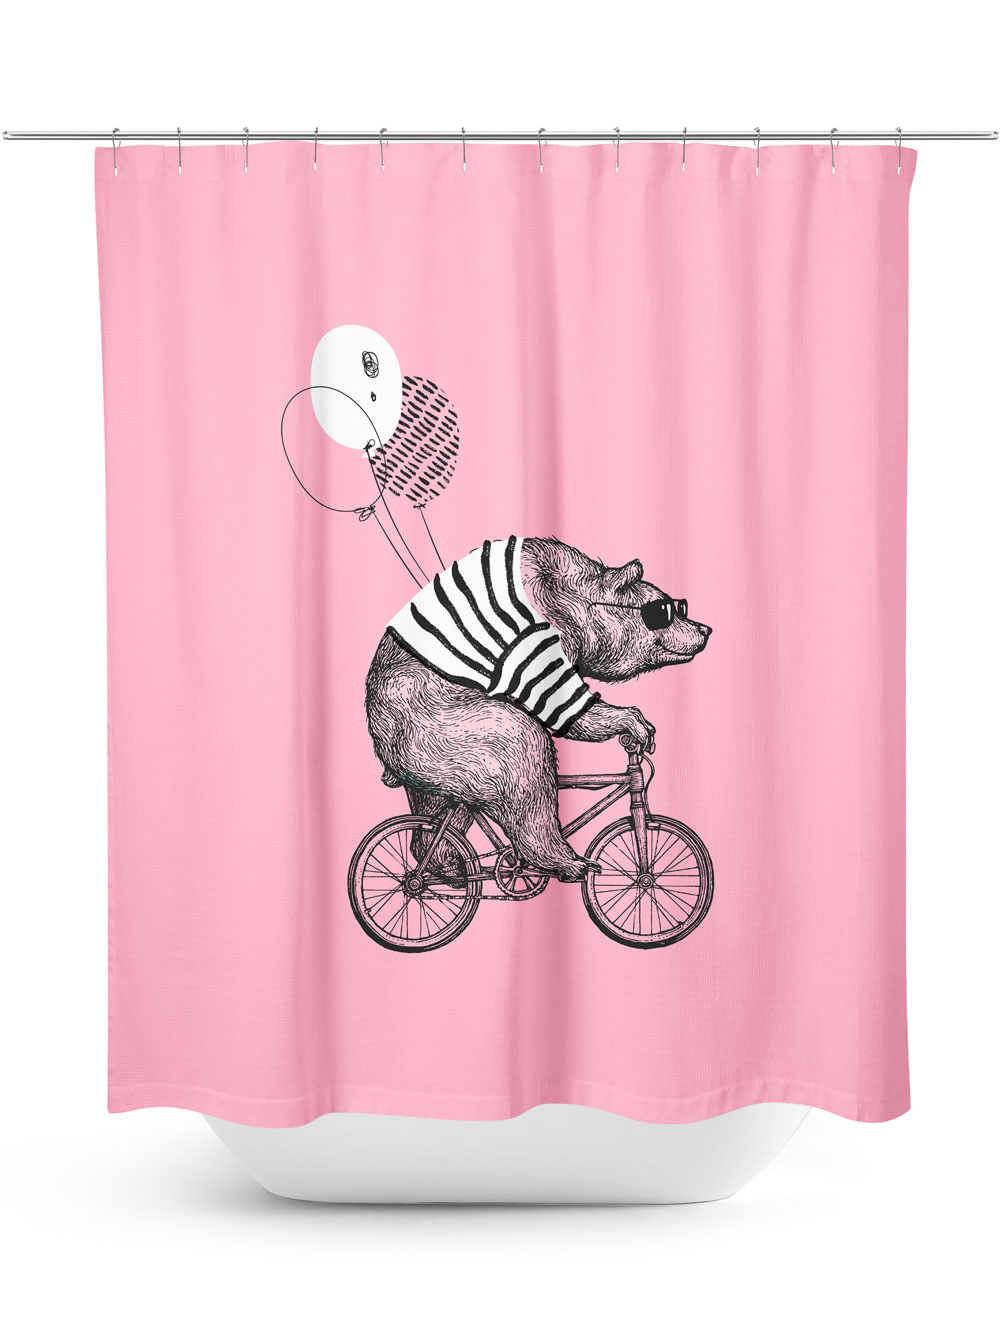 Bear riding bicycle on pink shower curtain